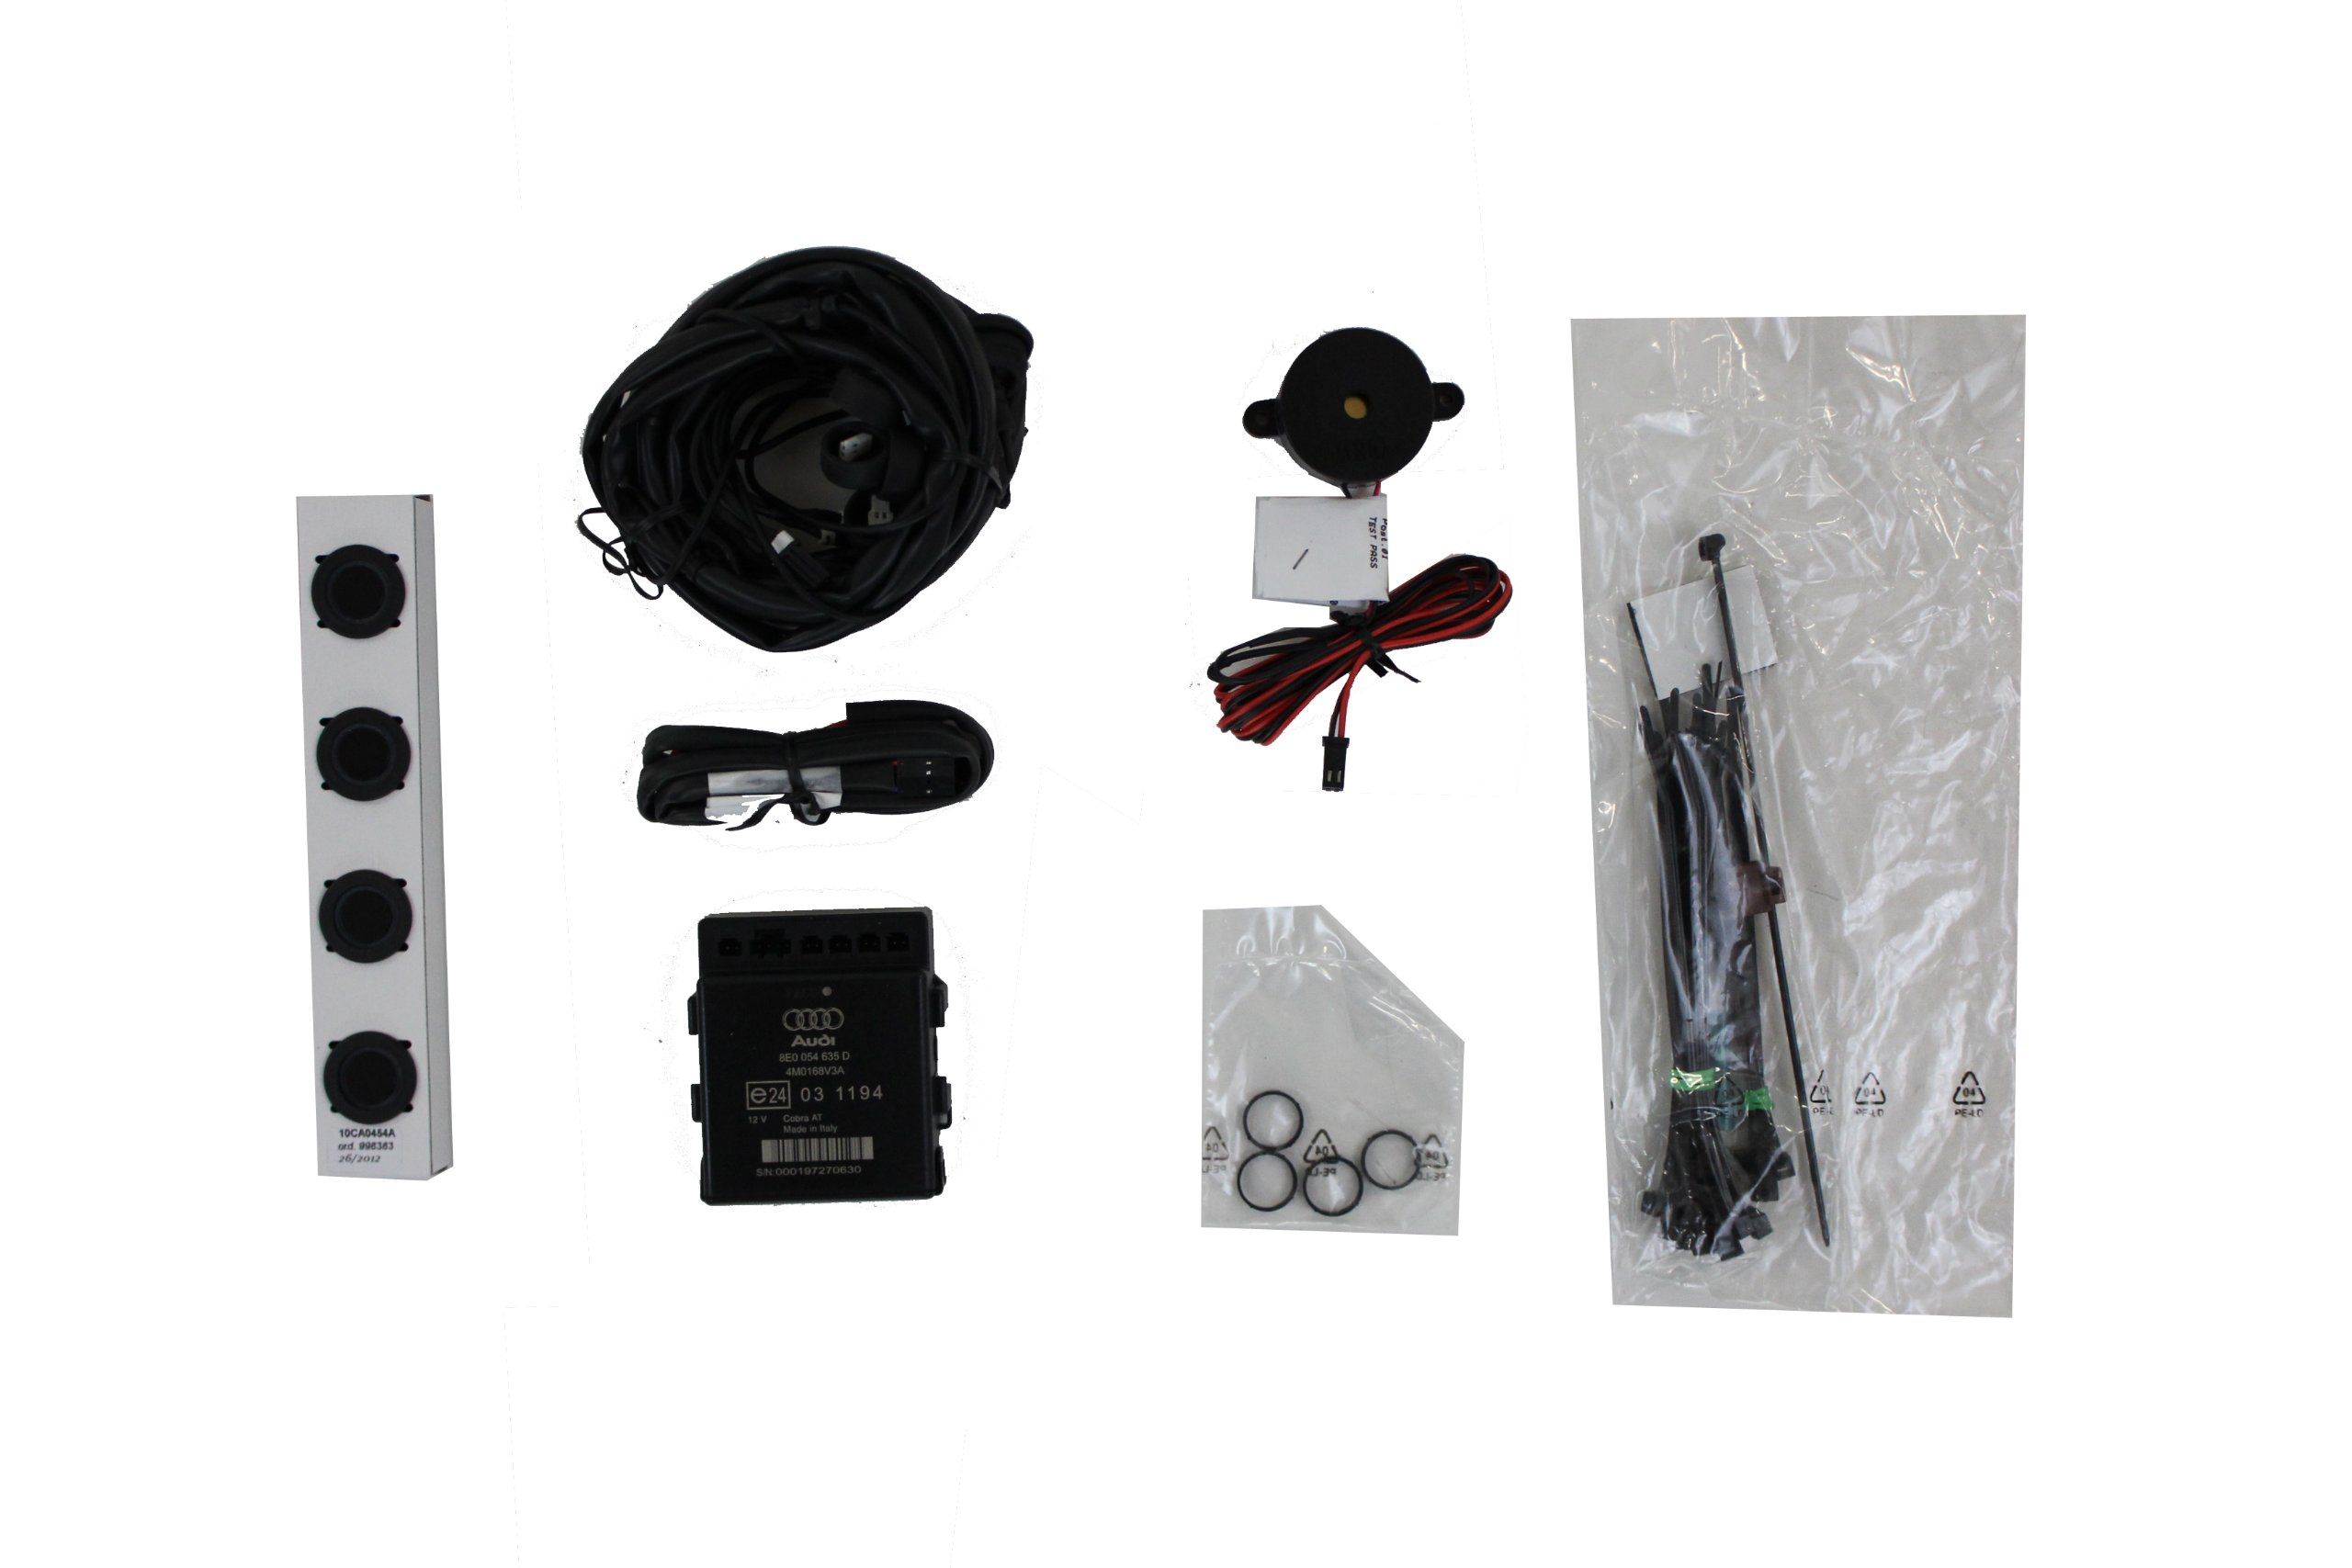 Genuiene Audi Accessories 8T0054630A Rear Parking Aid Kit for Audi A4